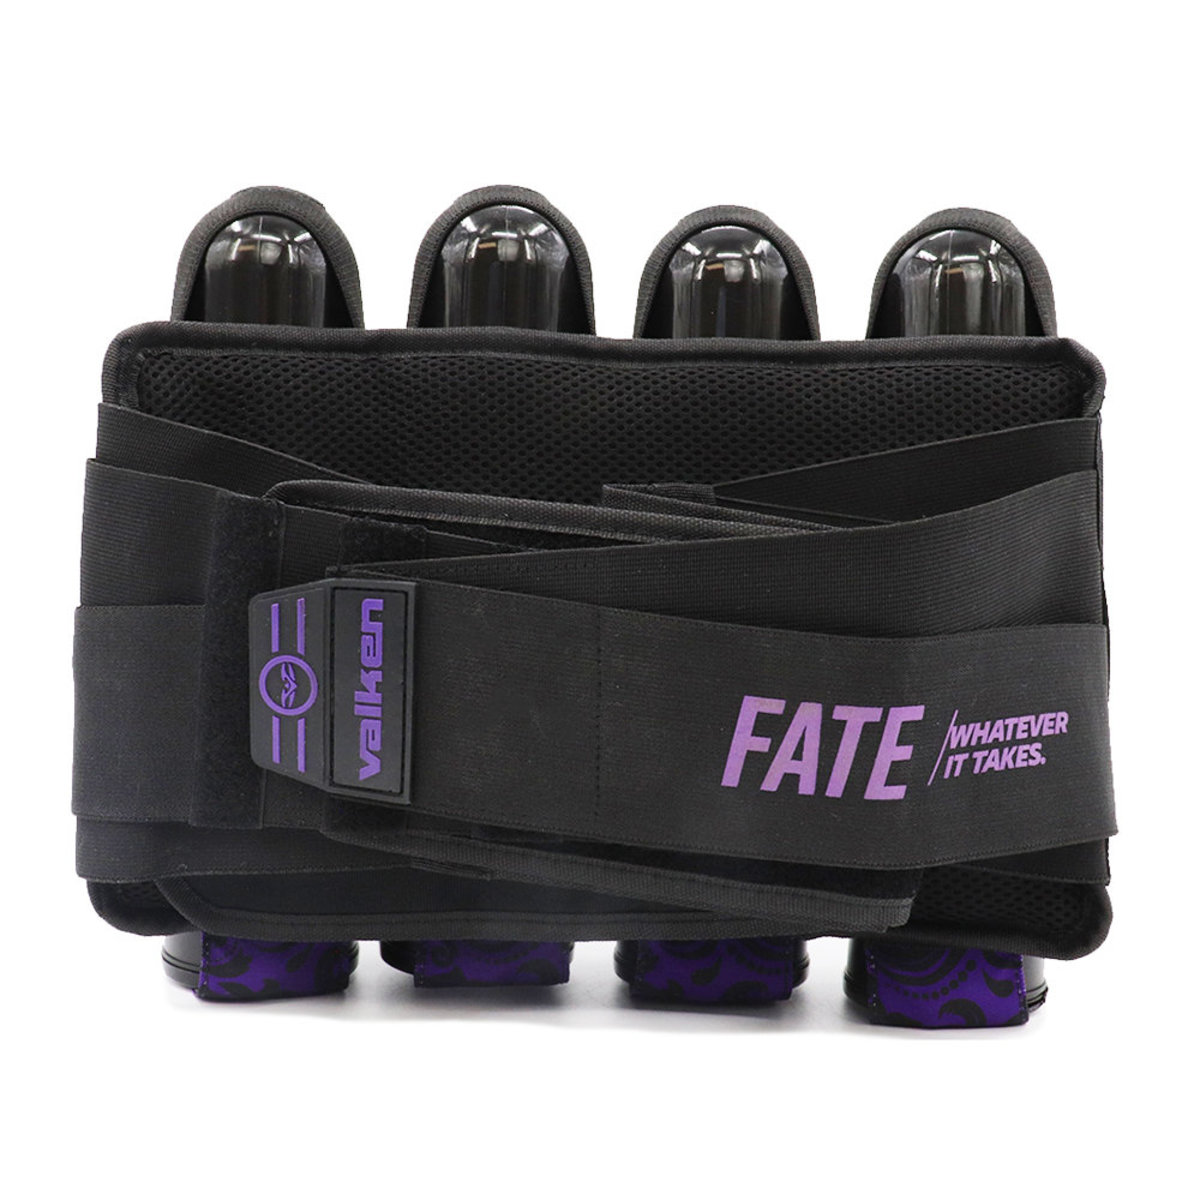 View larger image of Valken Fate GFX 4+3 Paintball Harness - Royal Purple